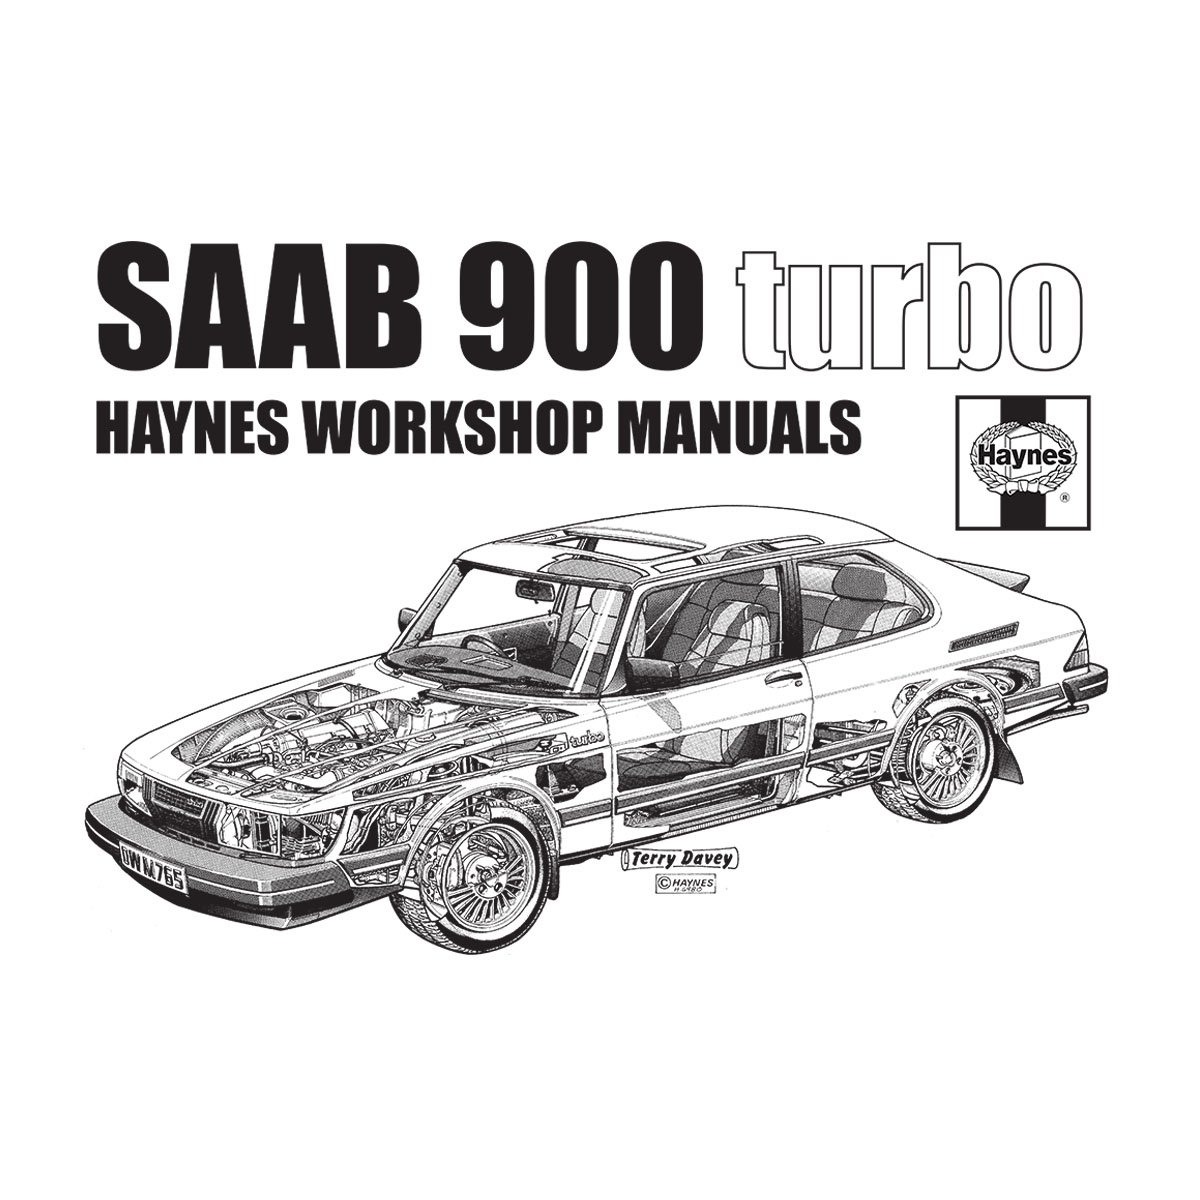 POD66 Haynes Workshop Manual 0765 Saab 900 Turbo Black Womens Vest at Amazon Womens Clothing store: